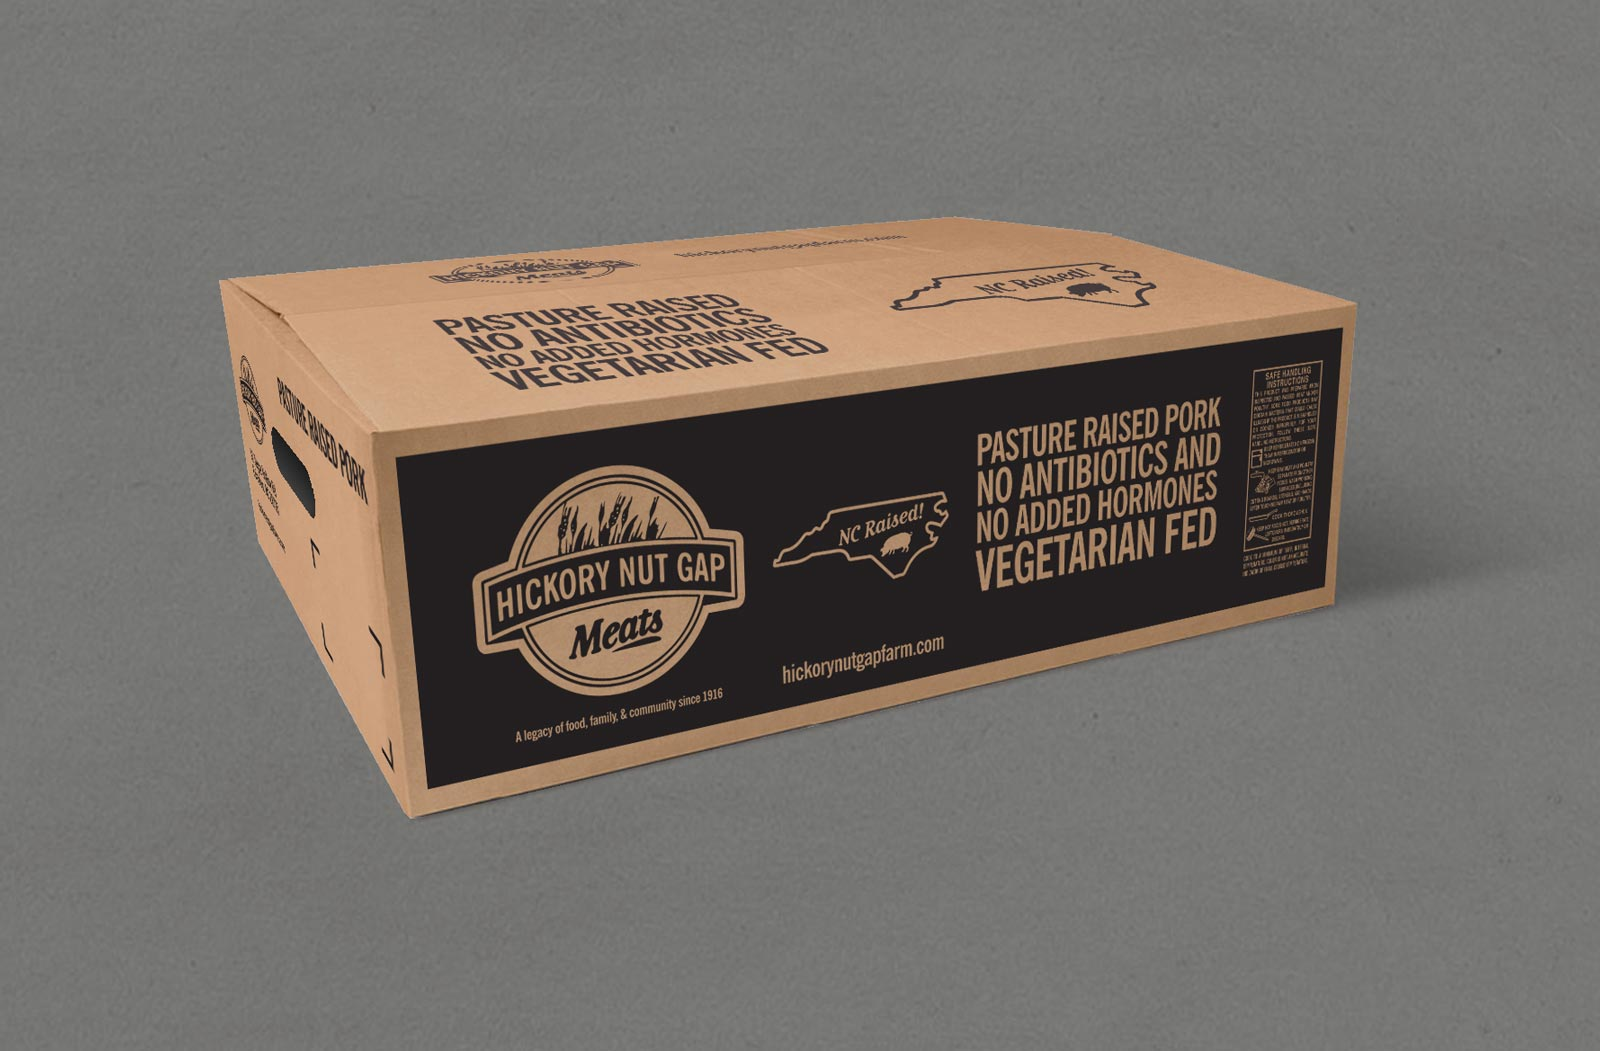 Hickory Nut Gap Meats Pork packaging/shipping cardboard box with black ink. Shown on gray background.